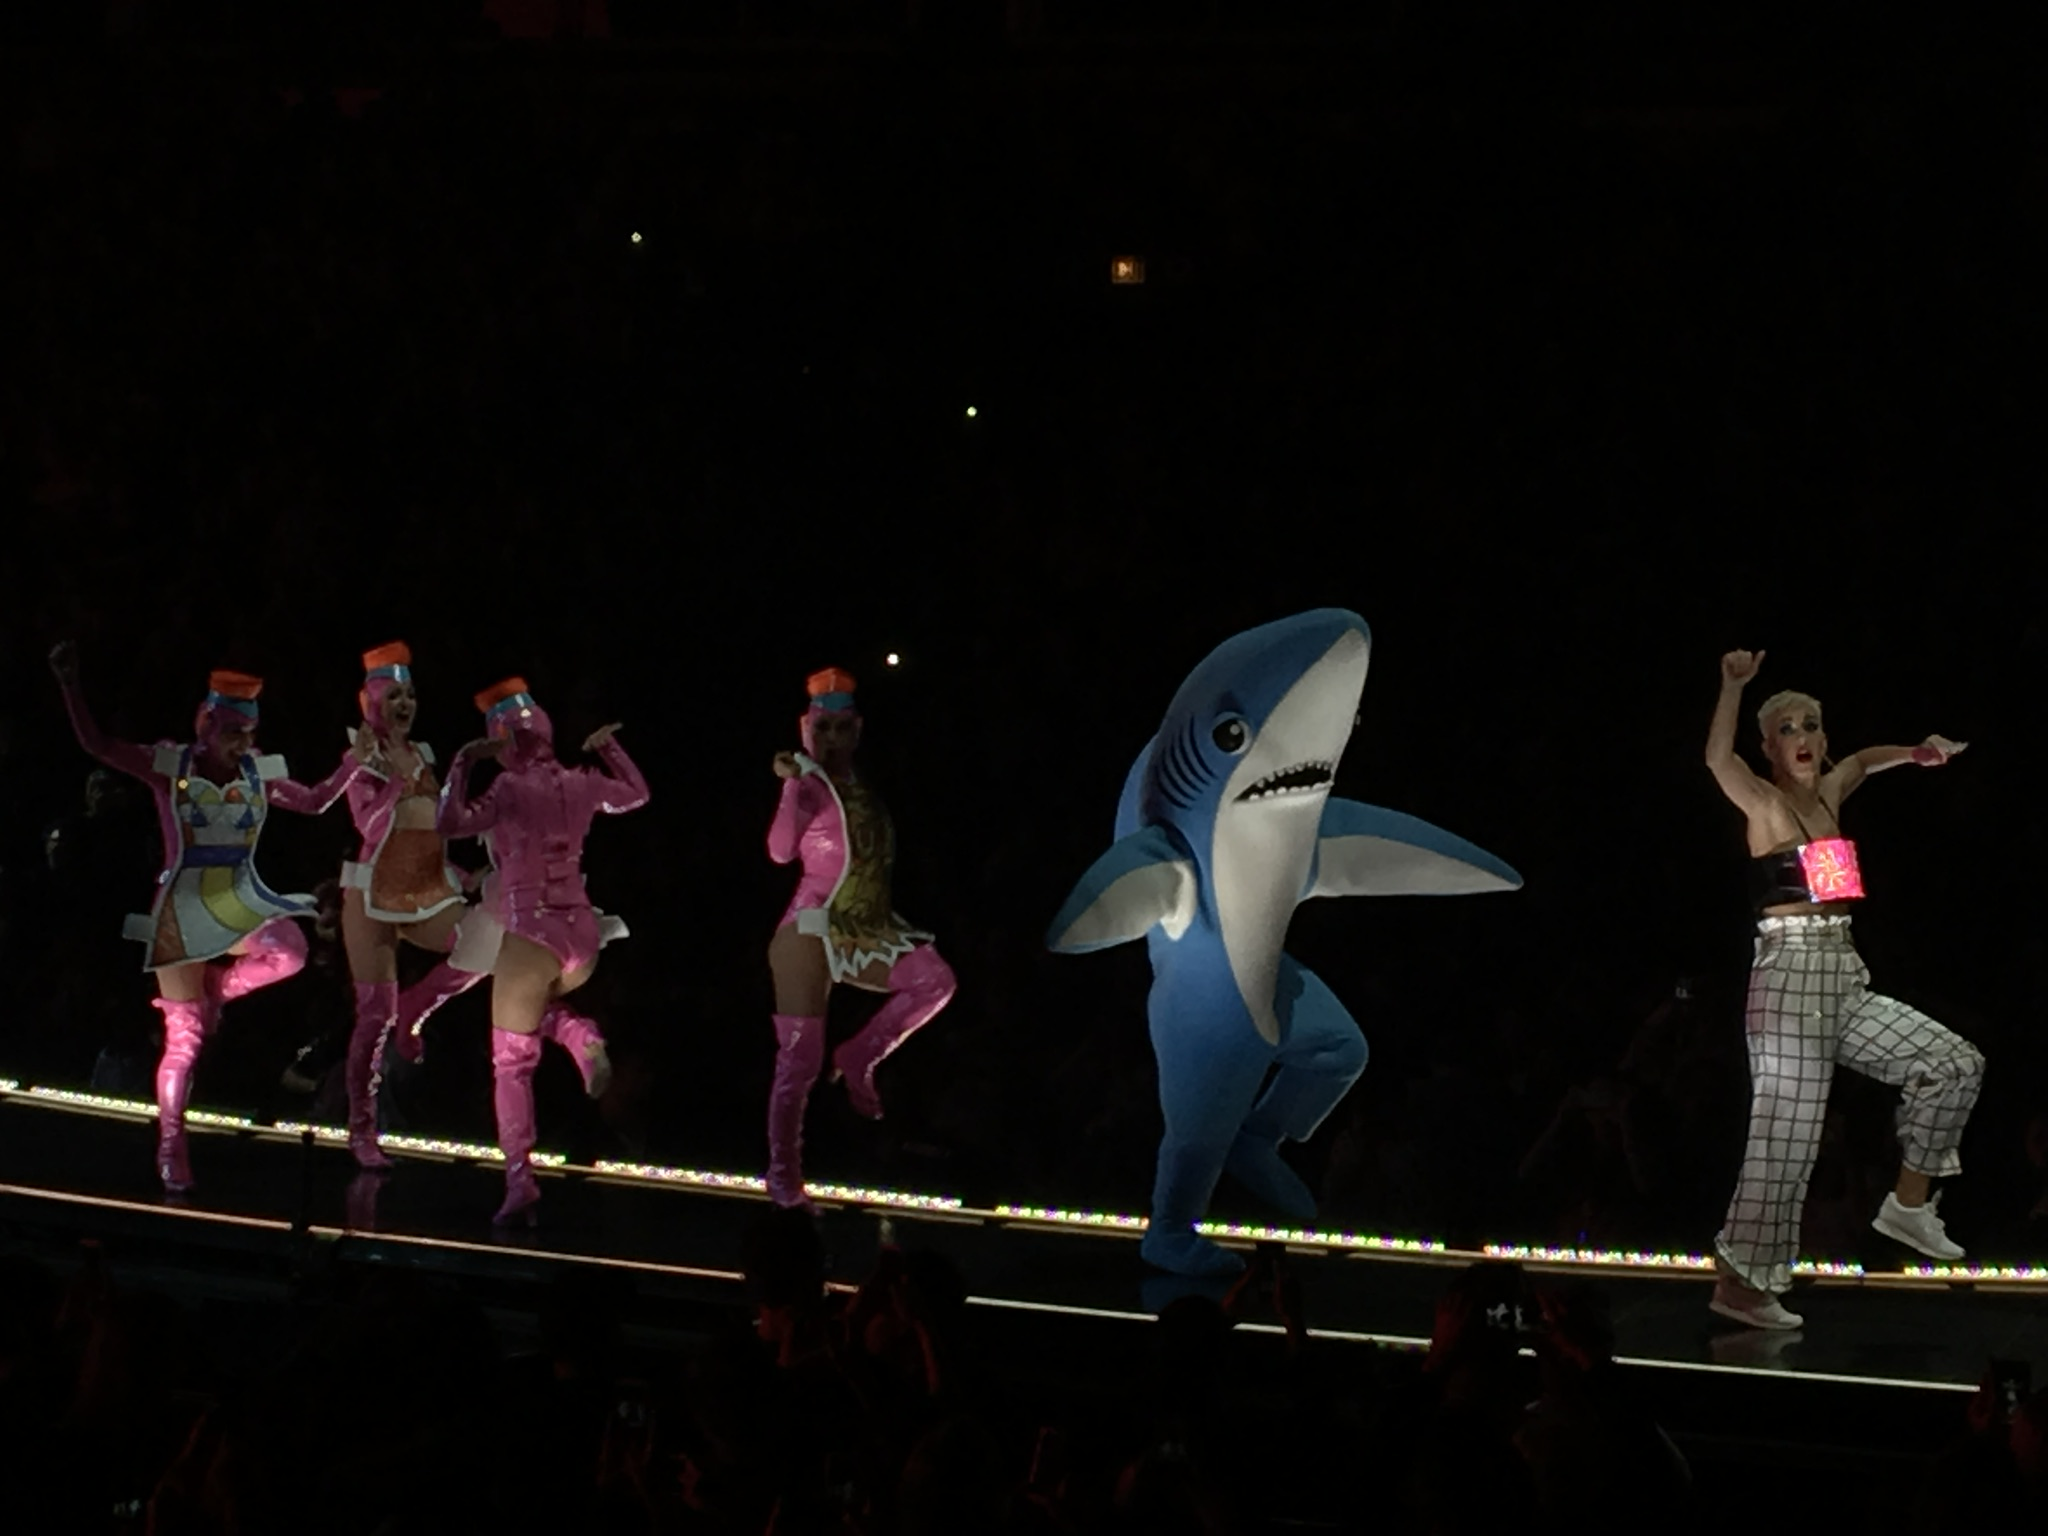 Katy Perry Witness Left Shark.JPG